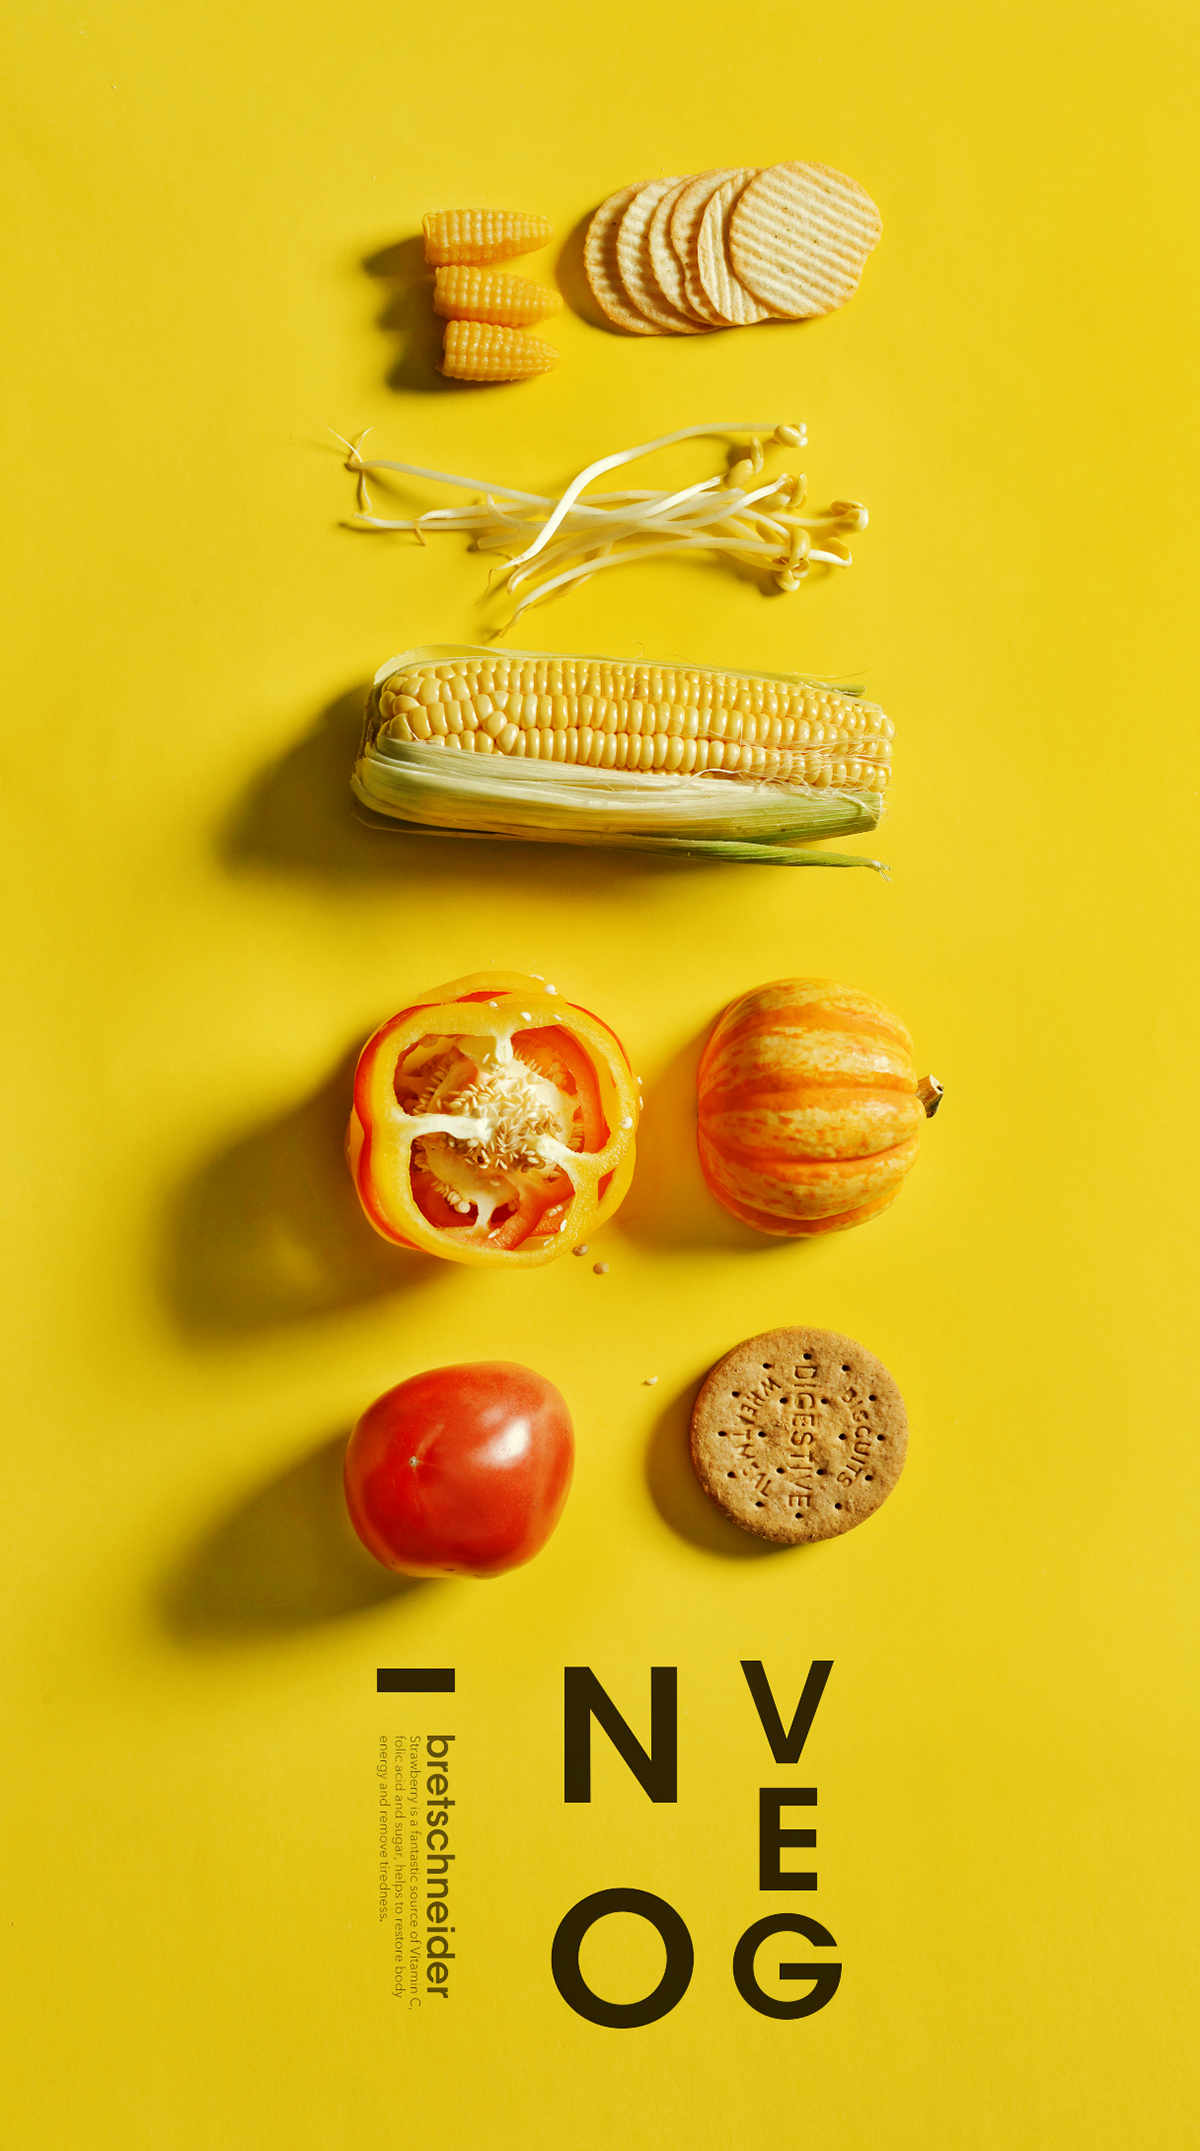 Poster design 50 excellent inspirations - Playing With Food Poster Design Inspiration How Design